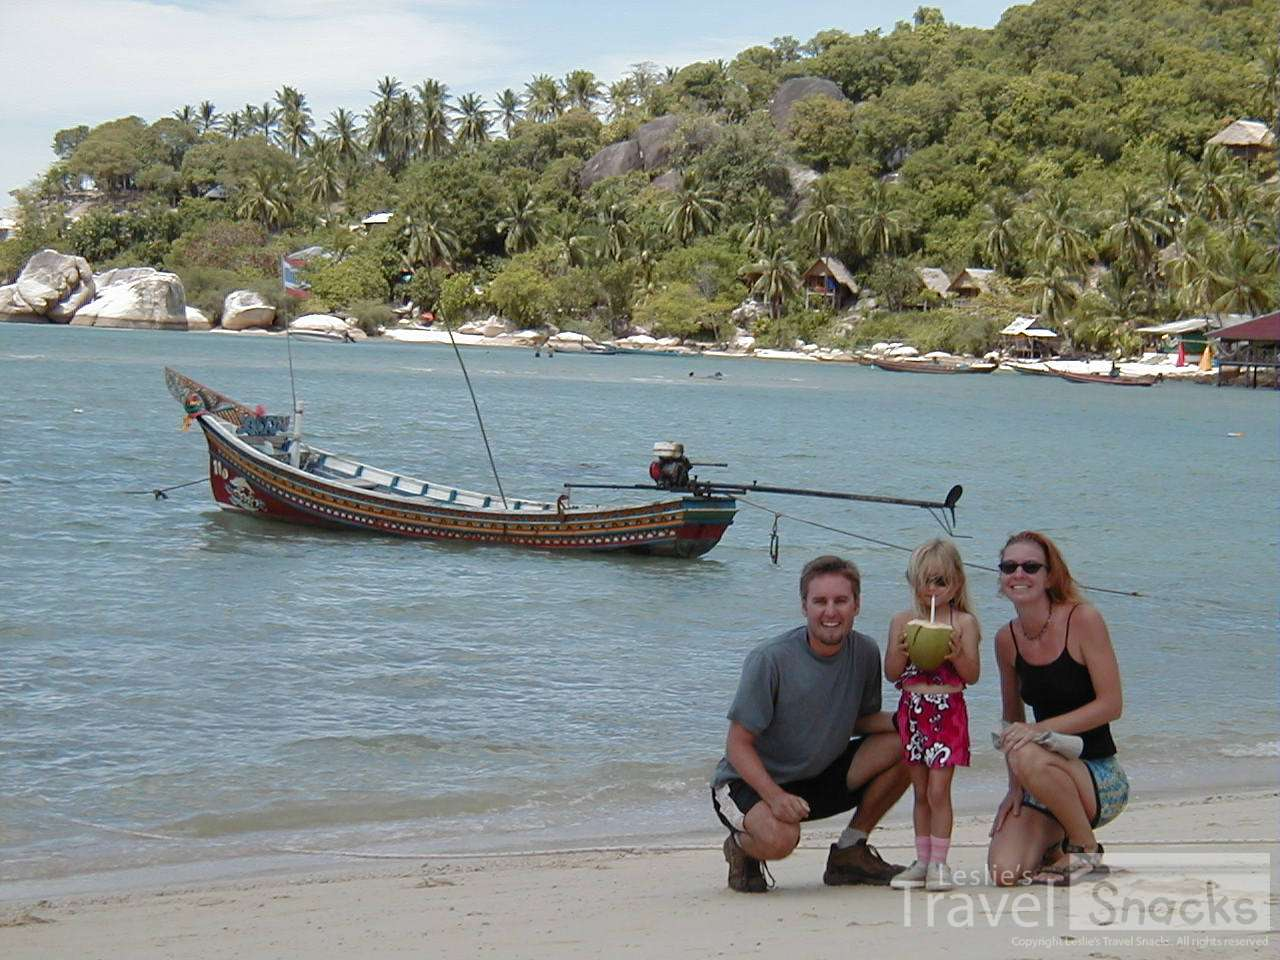 Enjoying Koh Tao!